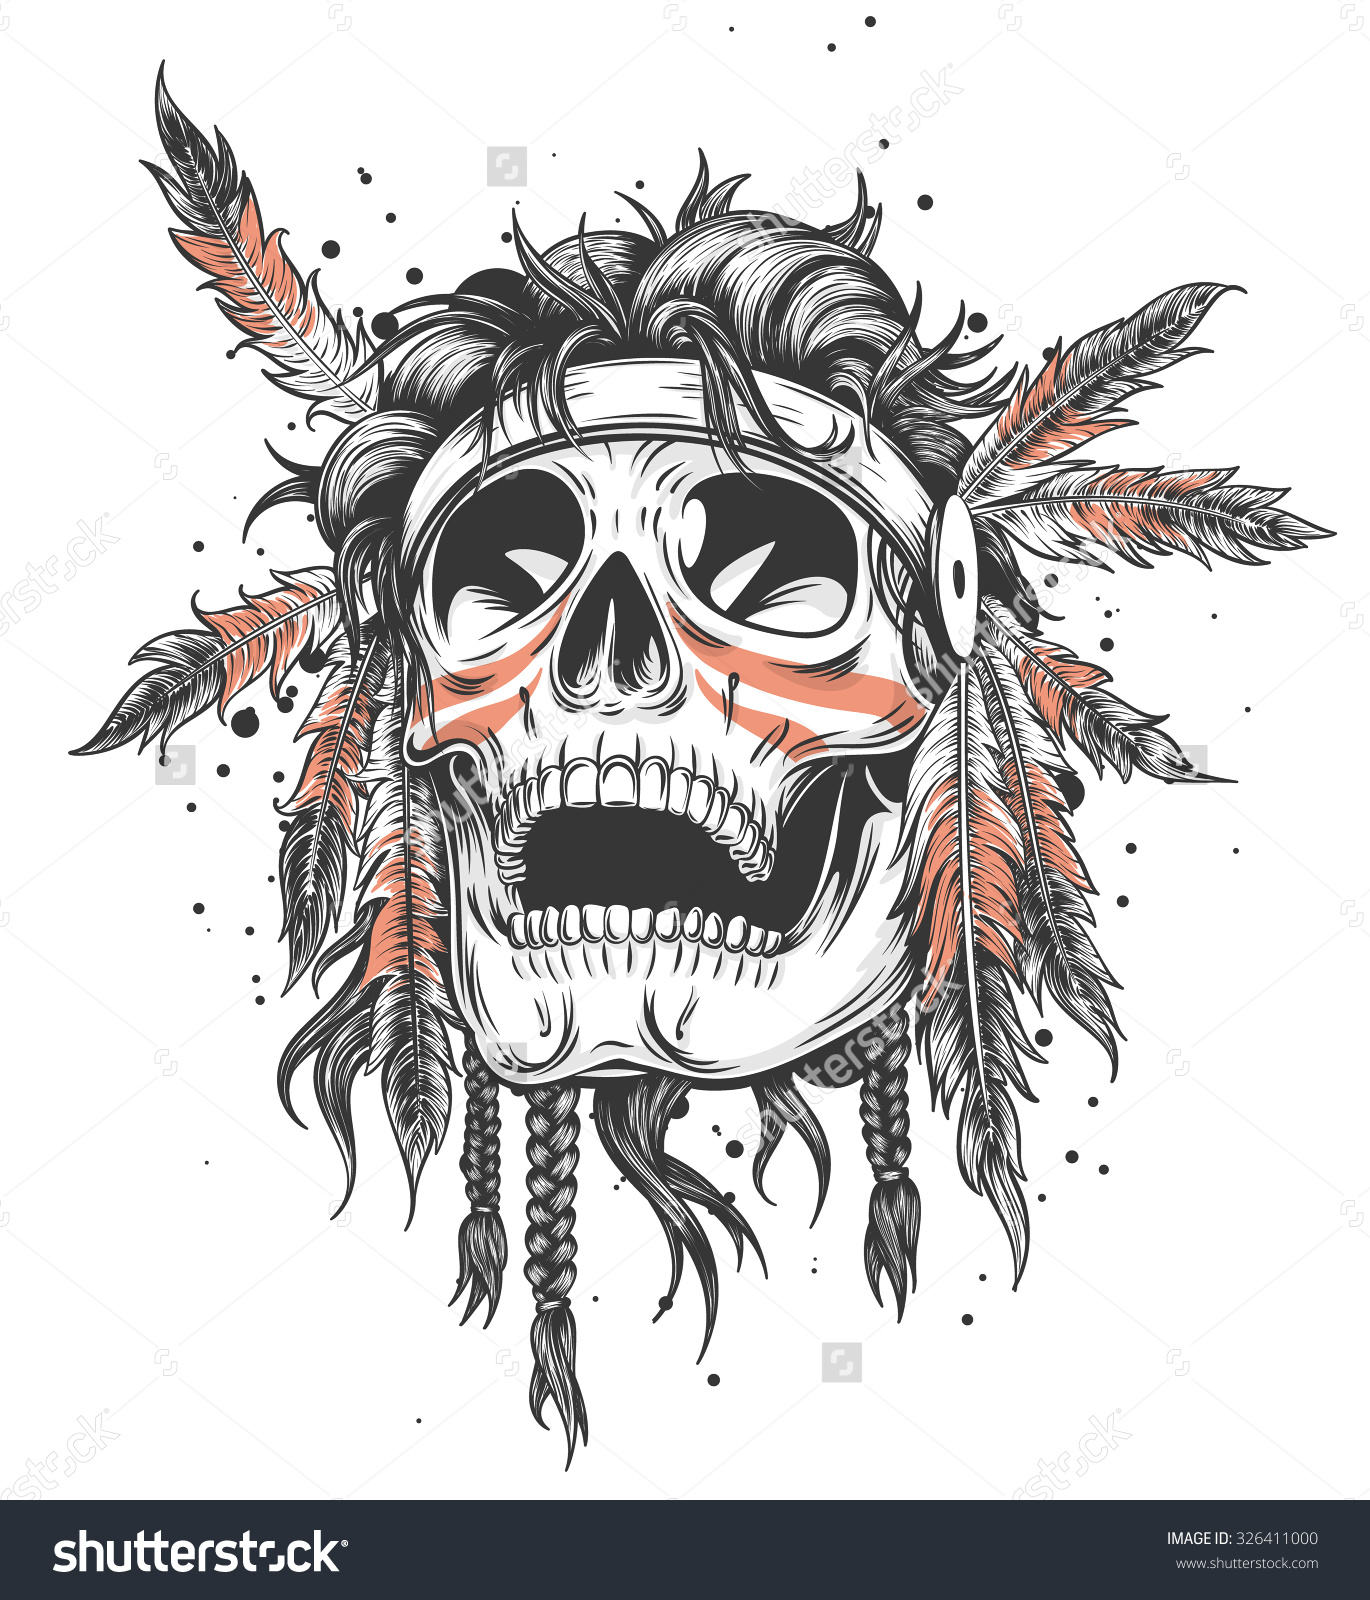 Native American Skull Drawing At Getdrawings Free For Personal